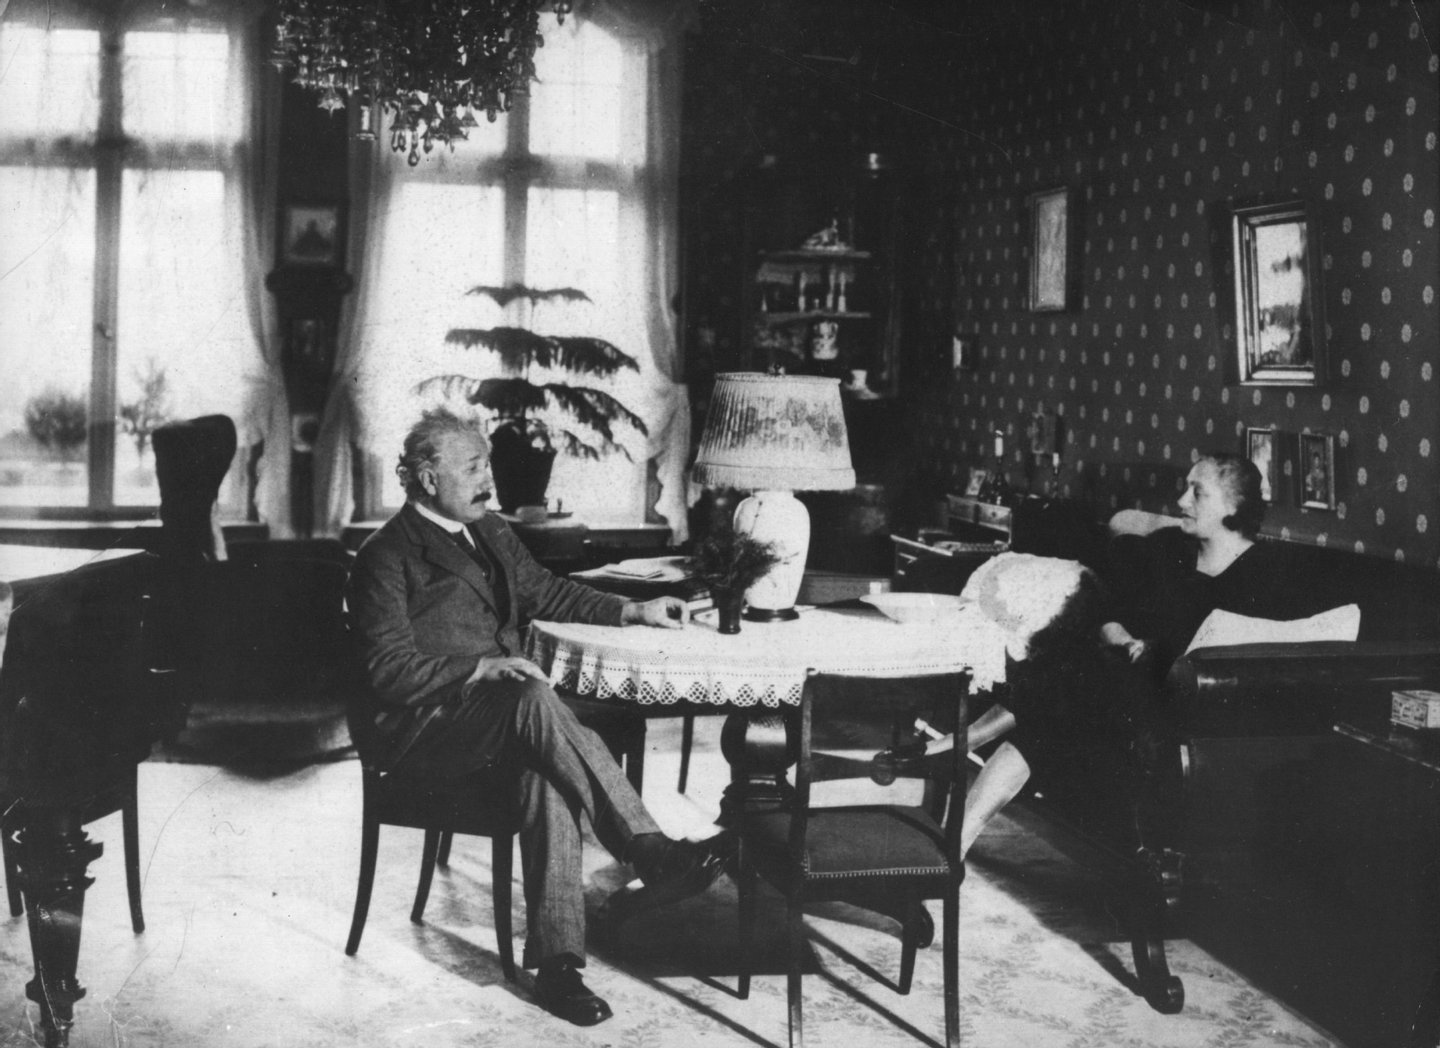 circa 1930: German-Swiss-American mathematical physicist Albert Einstein (1879 - 1955) and his wife Elsa at home near Berlin. (Photo by Keystone/Getty Images)